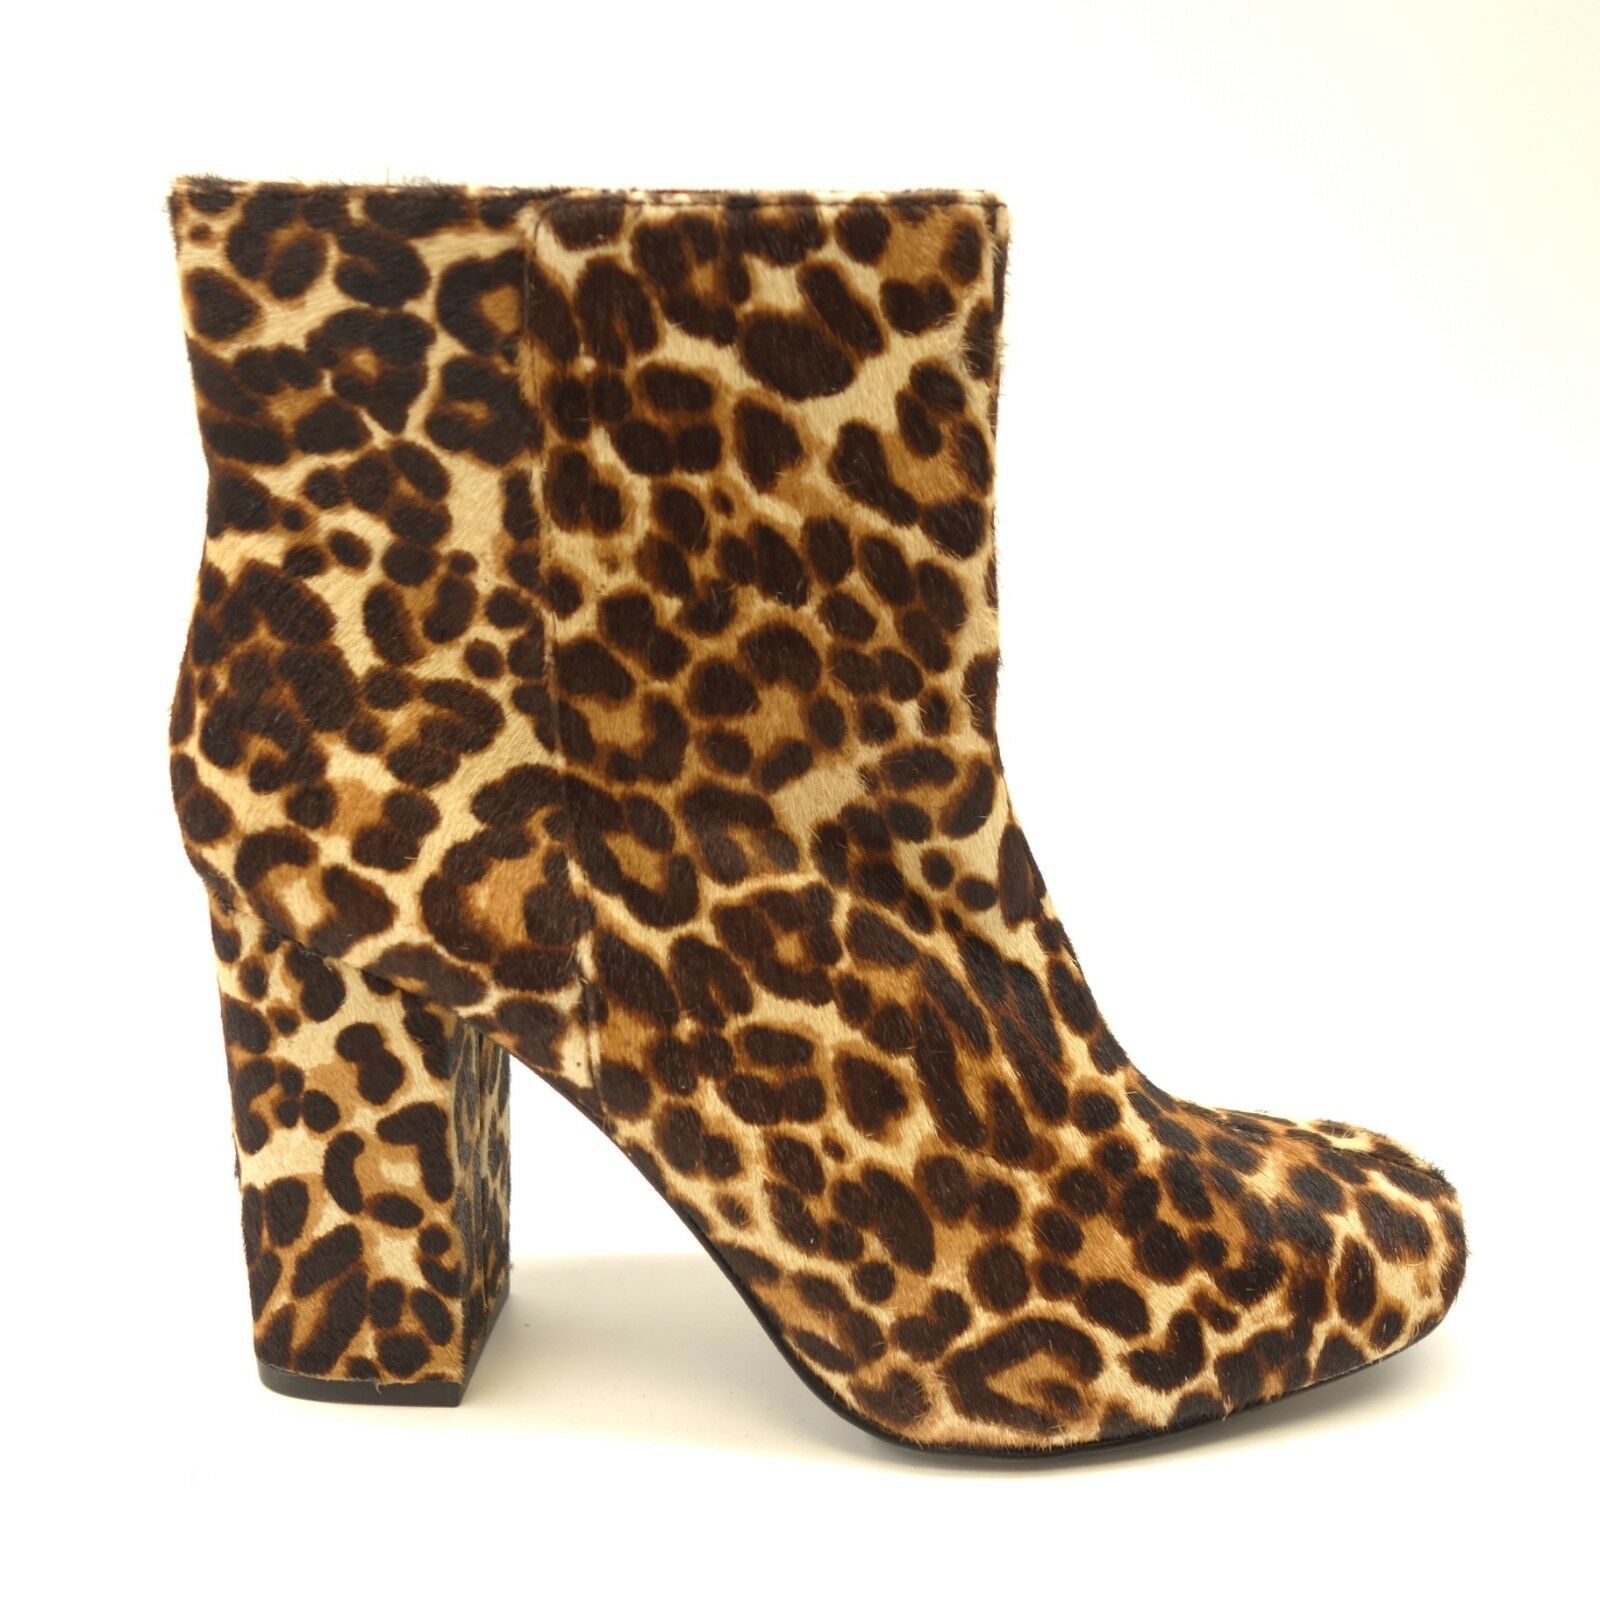 New Charles David Womens Studio Ankle Boot Leopard Leather Booties US 9